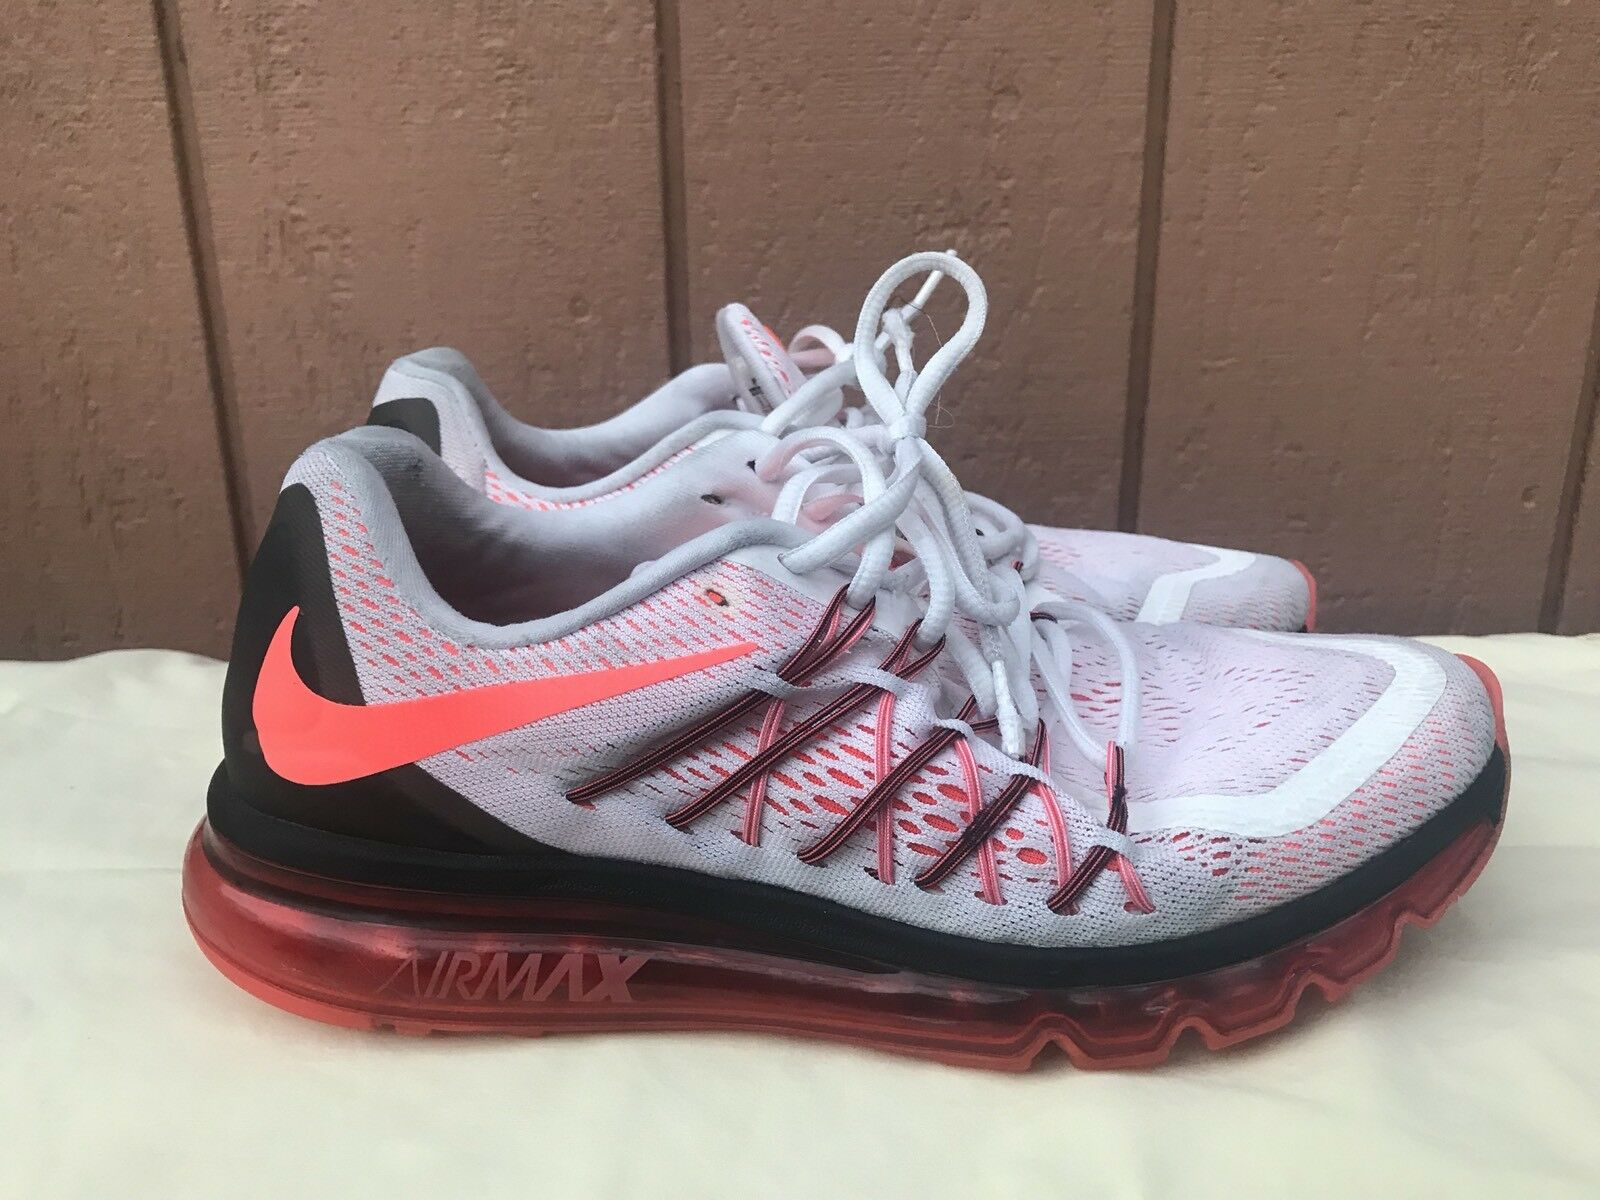 homme femme, femme chaussures blanches diverses 6,5 ventes ventes diverses blanches marchandises nike 6,5 8bf9cc